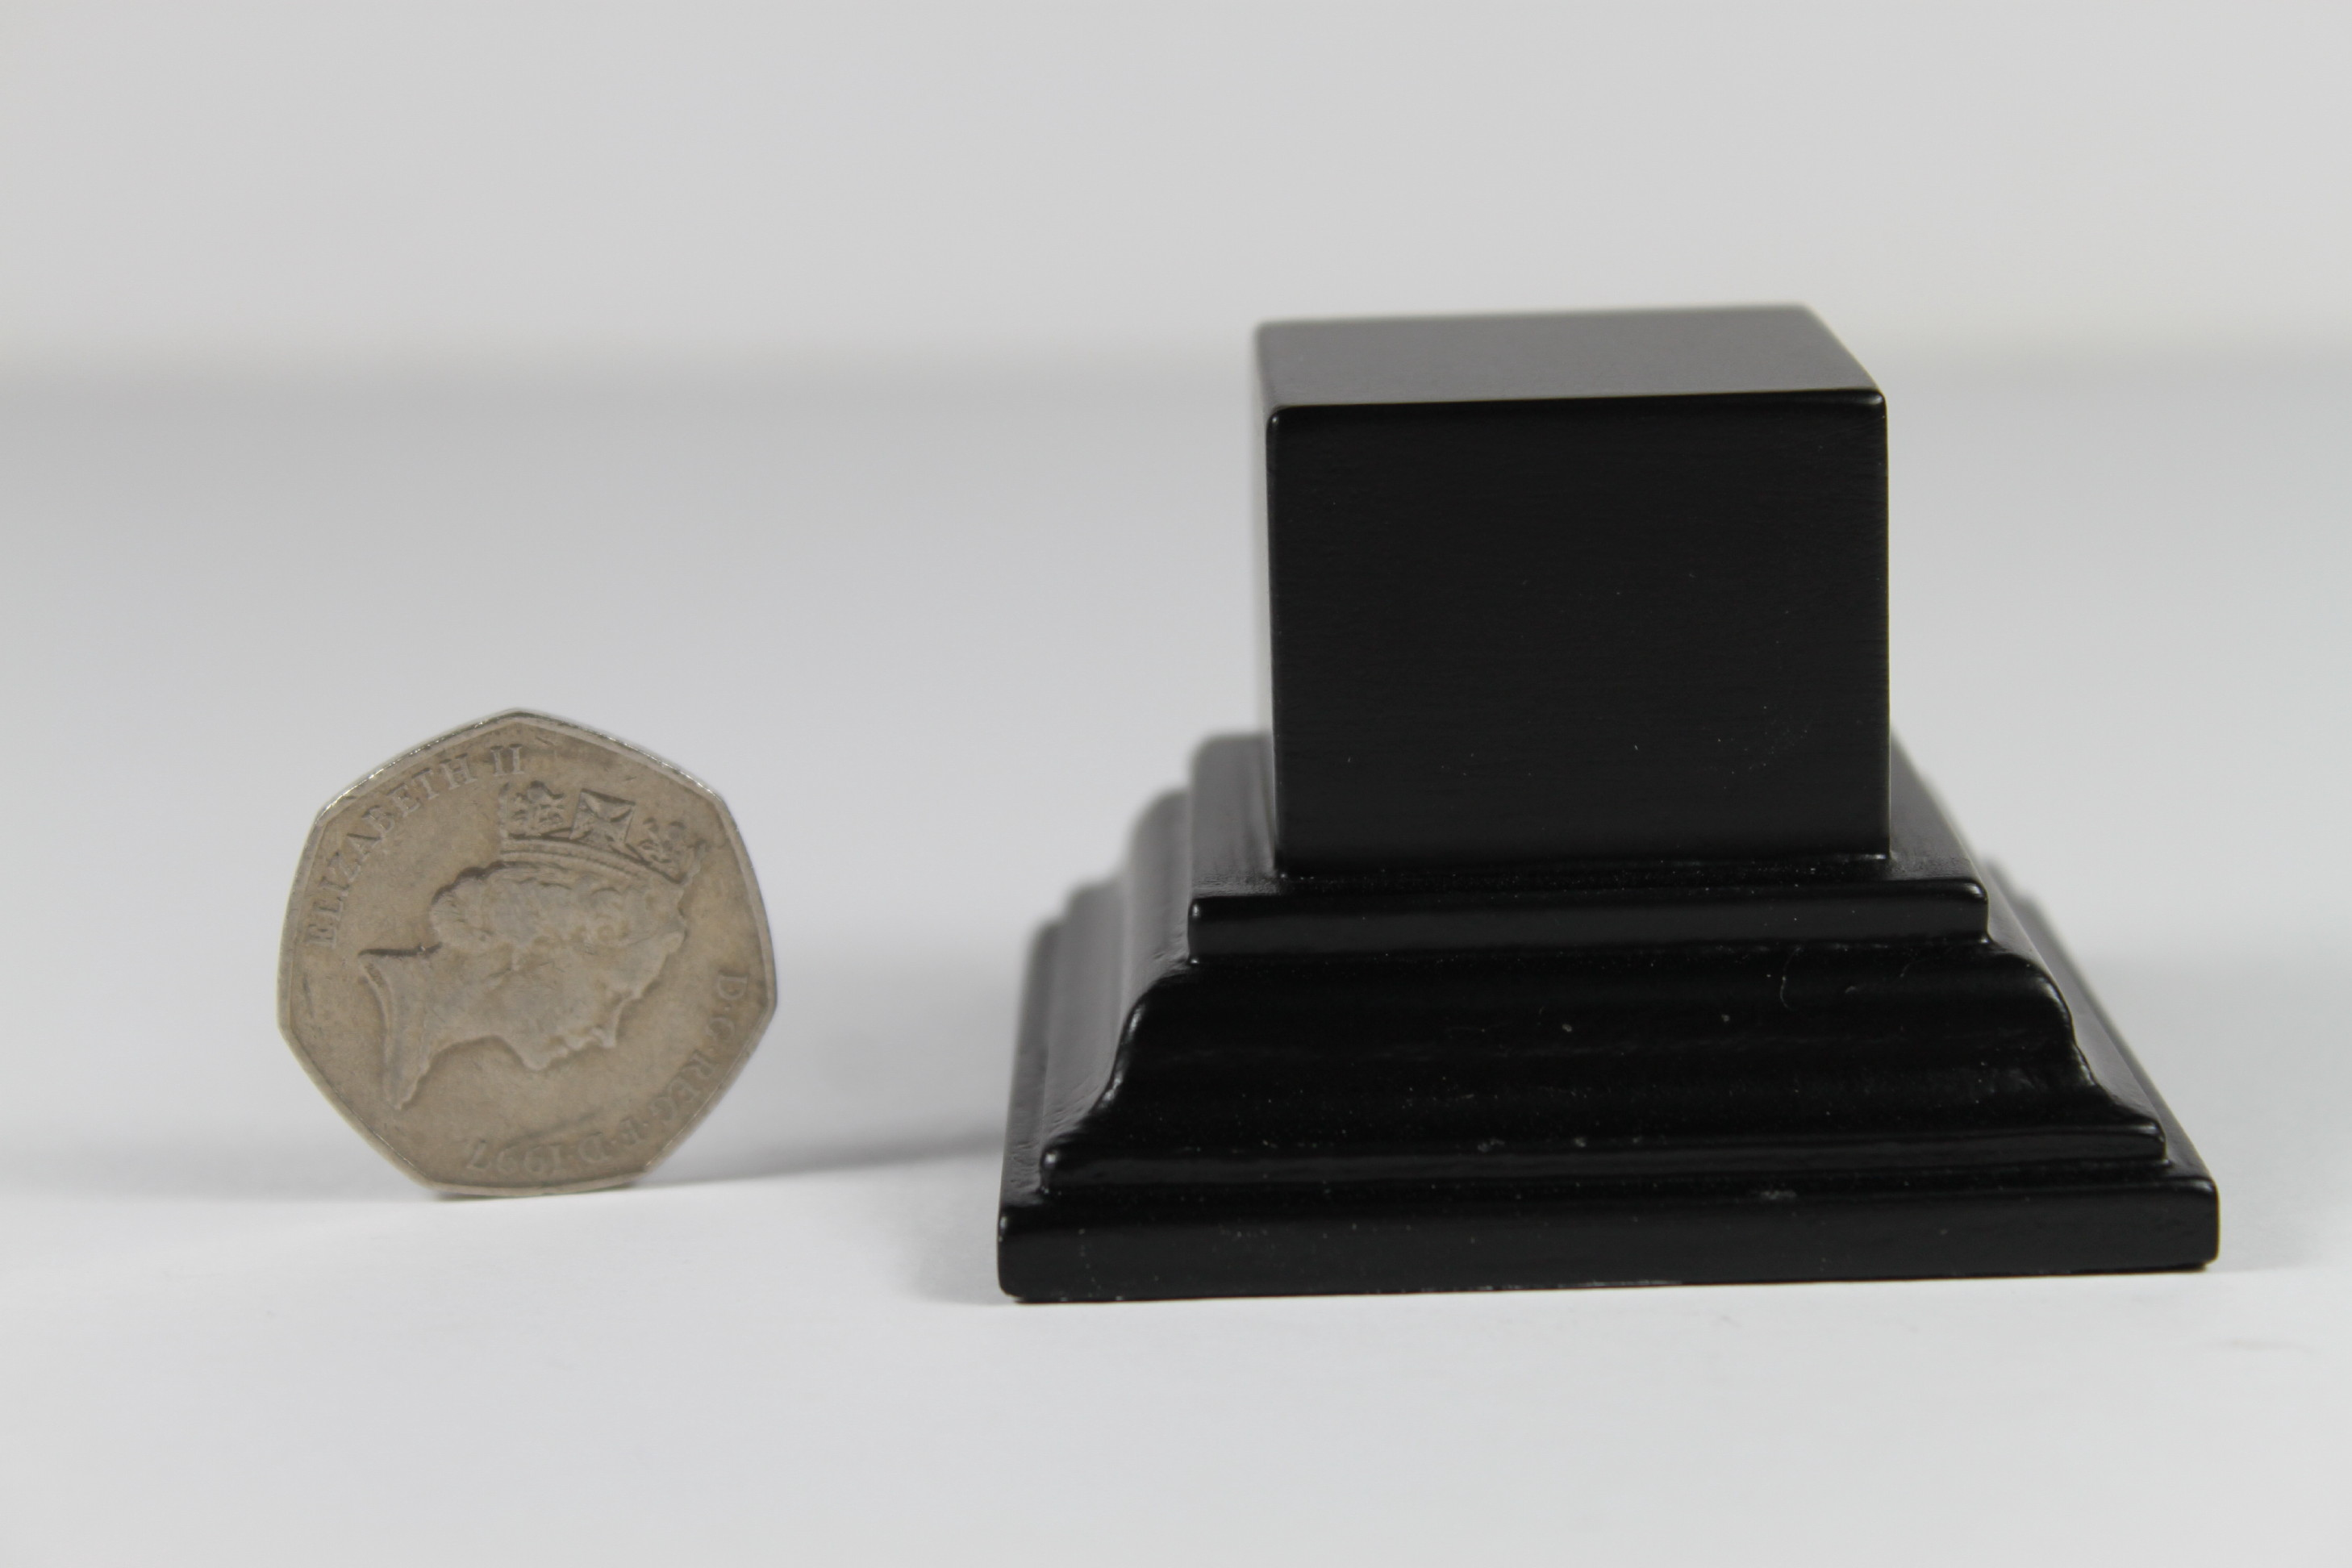 Square Plinth Base Black Satin 32mm x 32mm